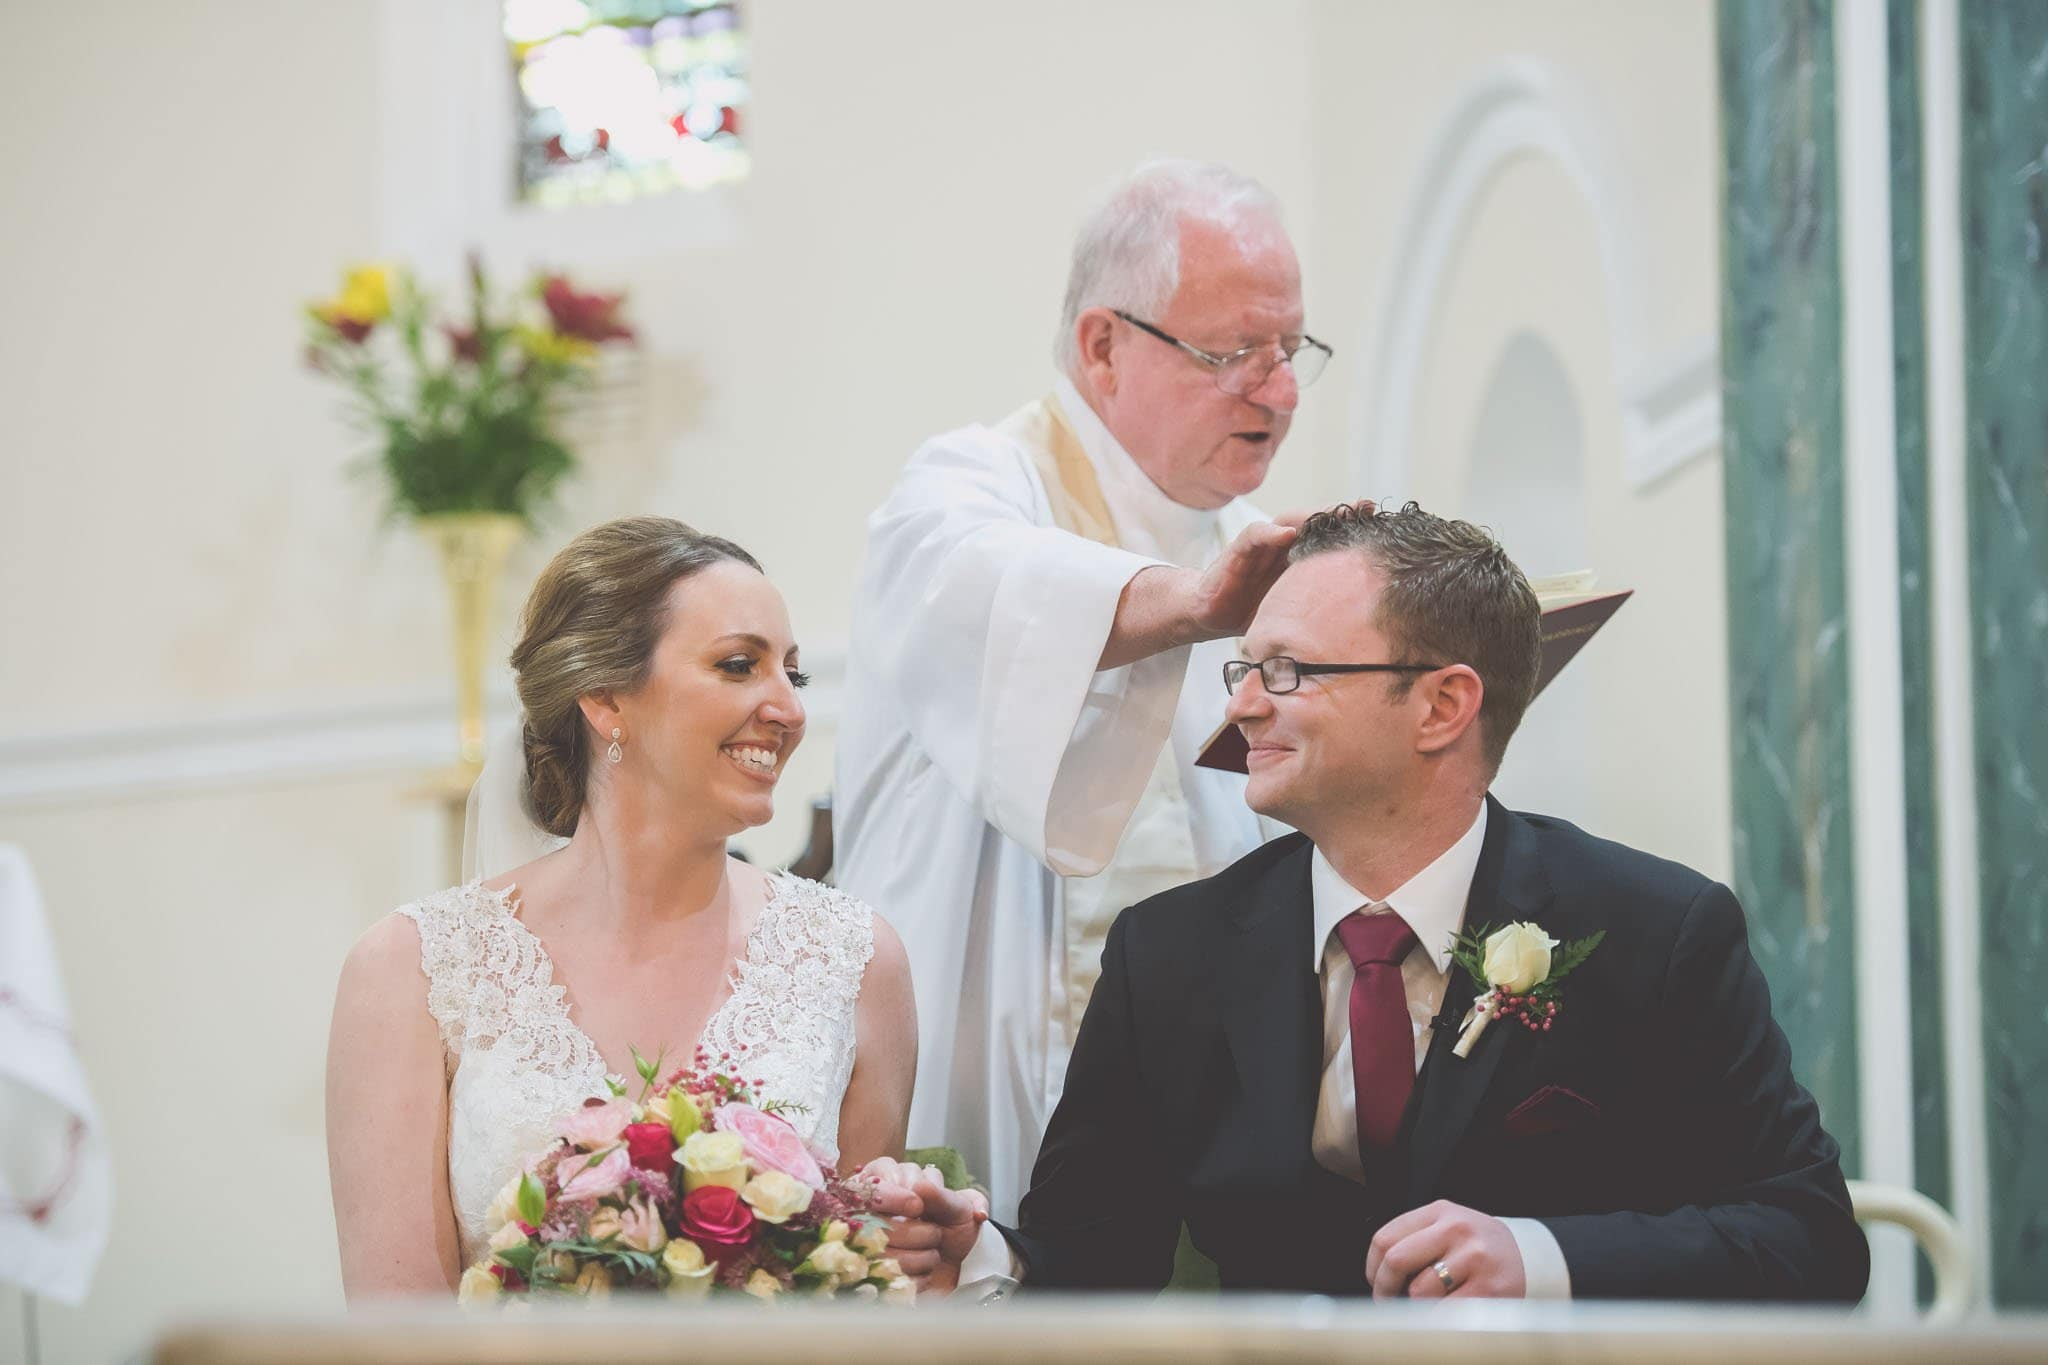 Wedding photography of a priest blessing the groom and bride at a Melbourne wedding.